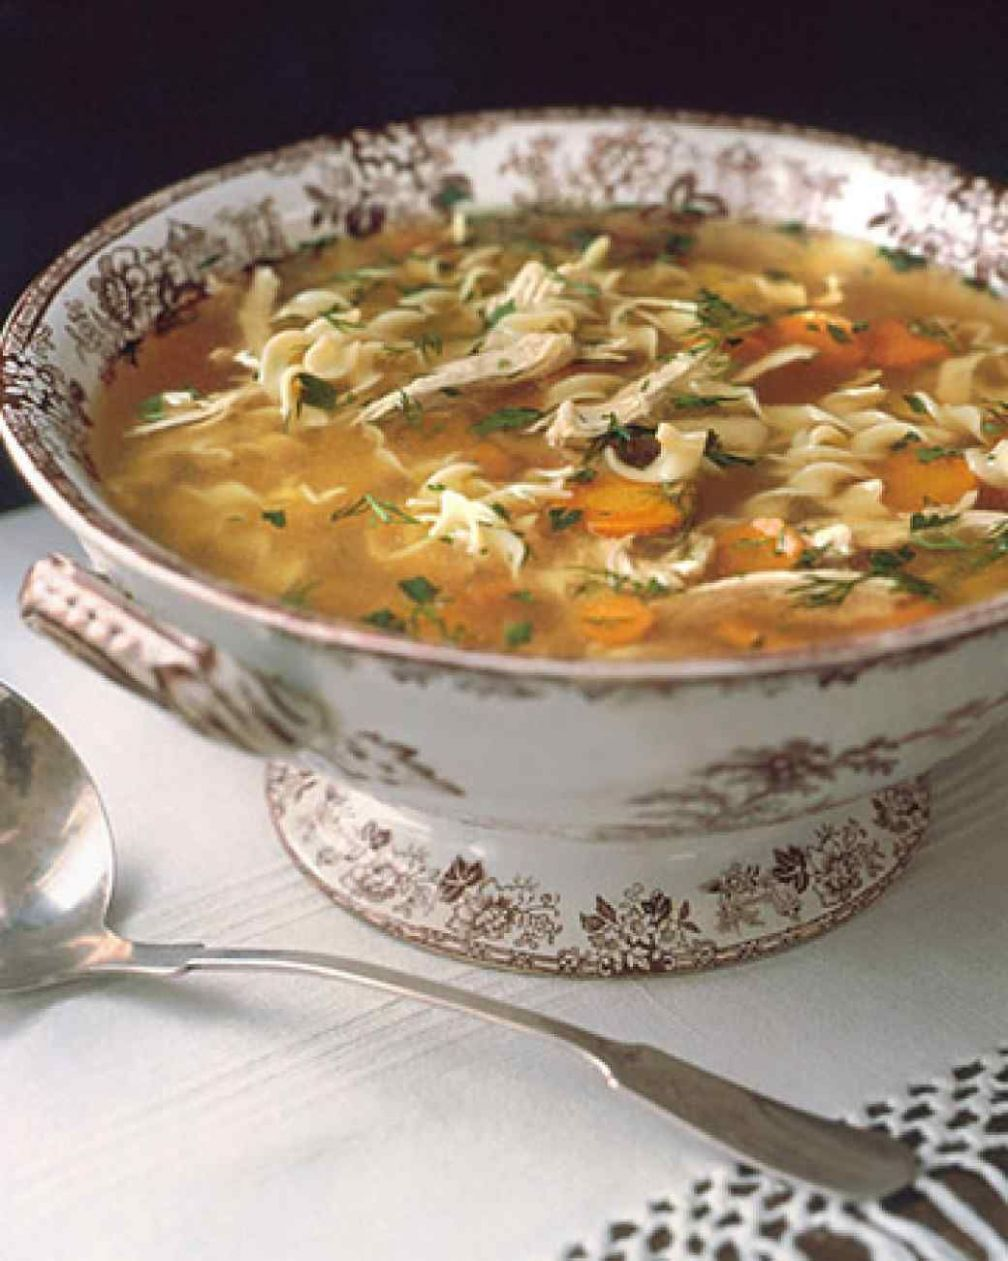 Winter Soups | Food recipes, Winter soups, Food - Soup Recipes Martha Stewart